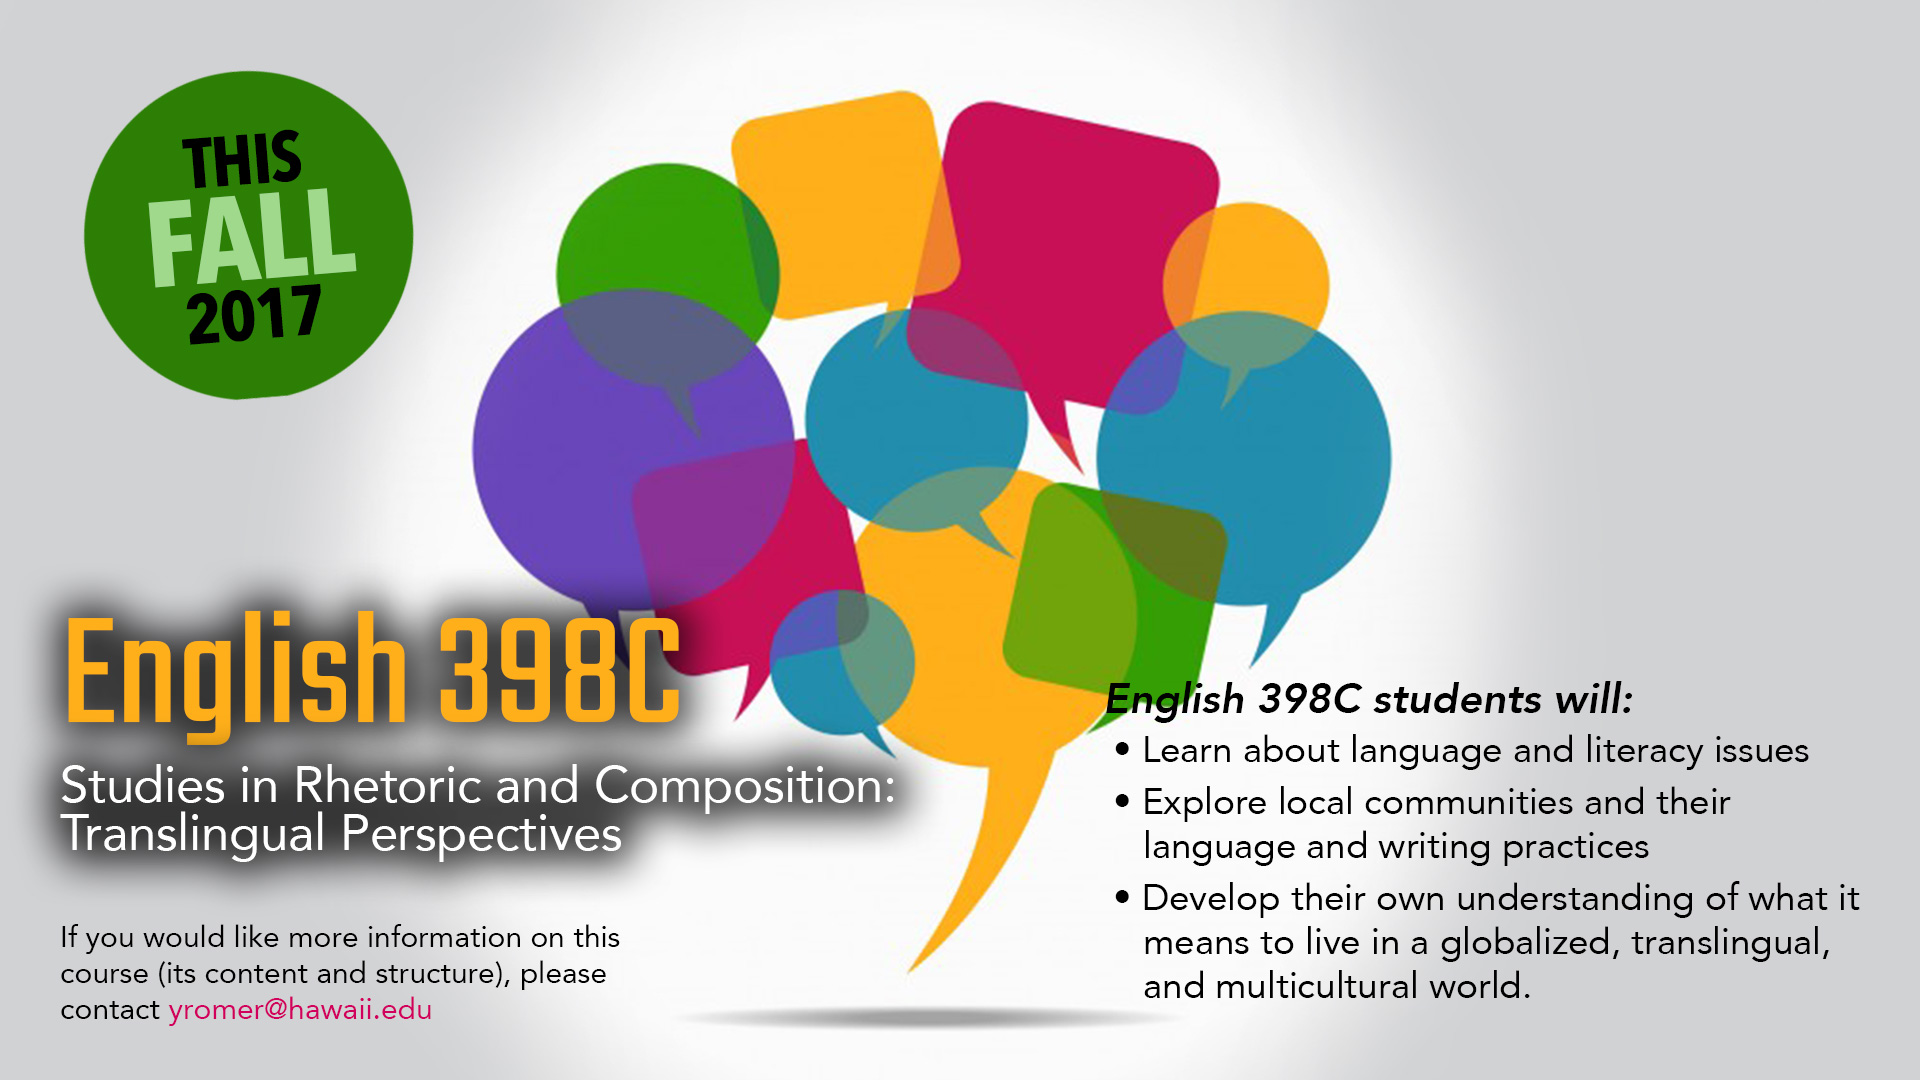 English 398C Studies in Rhetoric and Composition